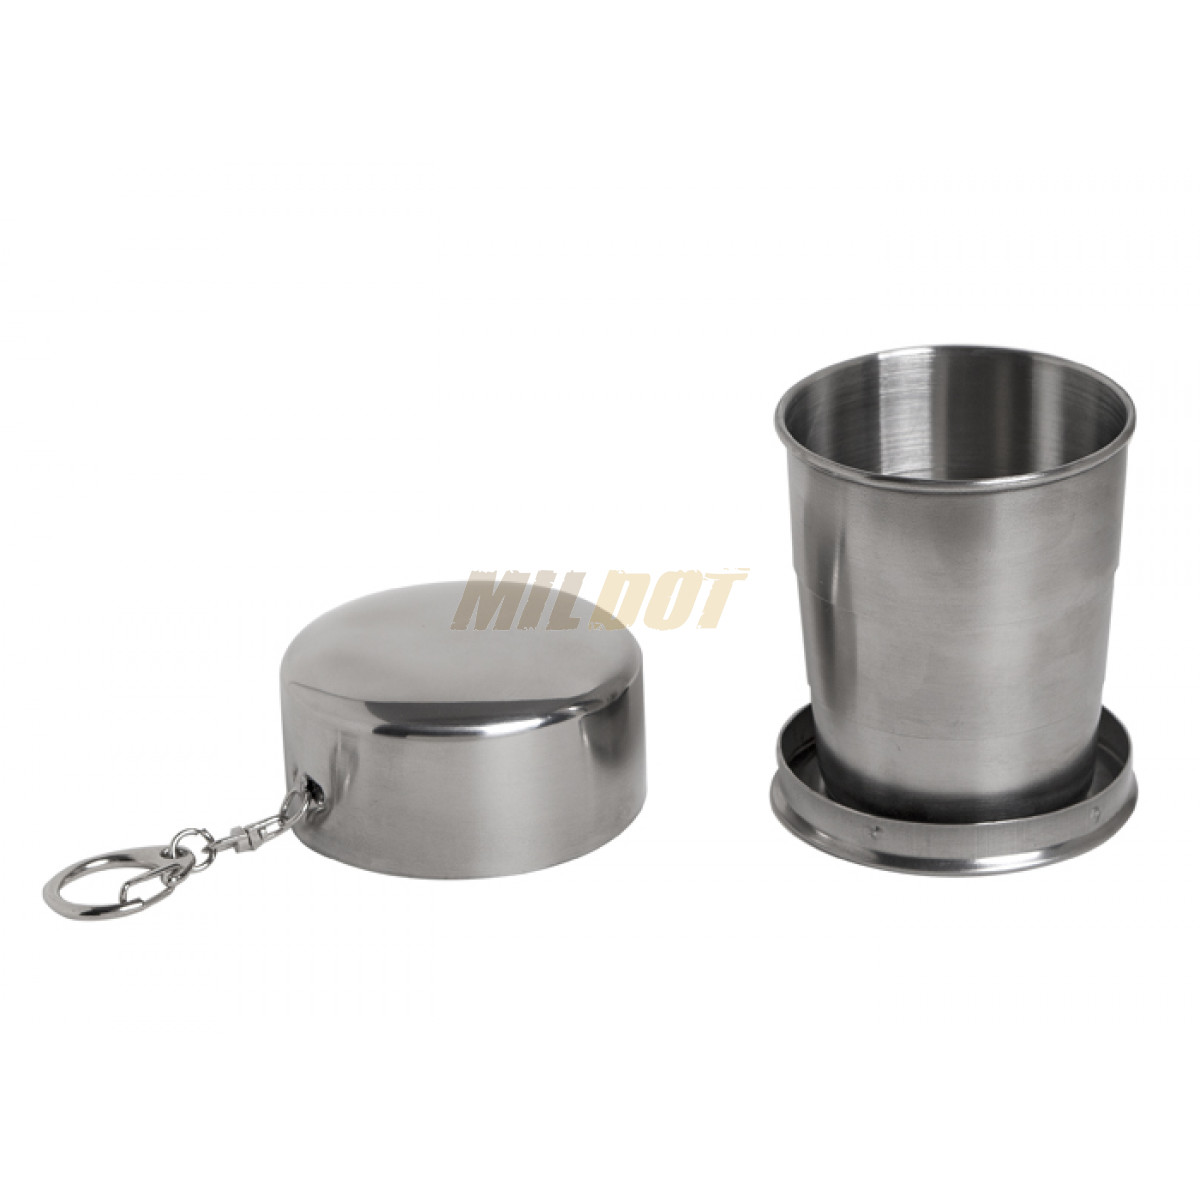 Vaso plegable acero inoxidable relags 140 ml - Acero in vaso prezzi ...